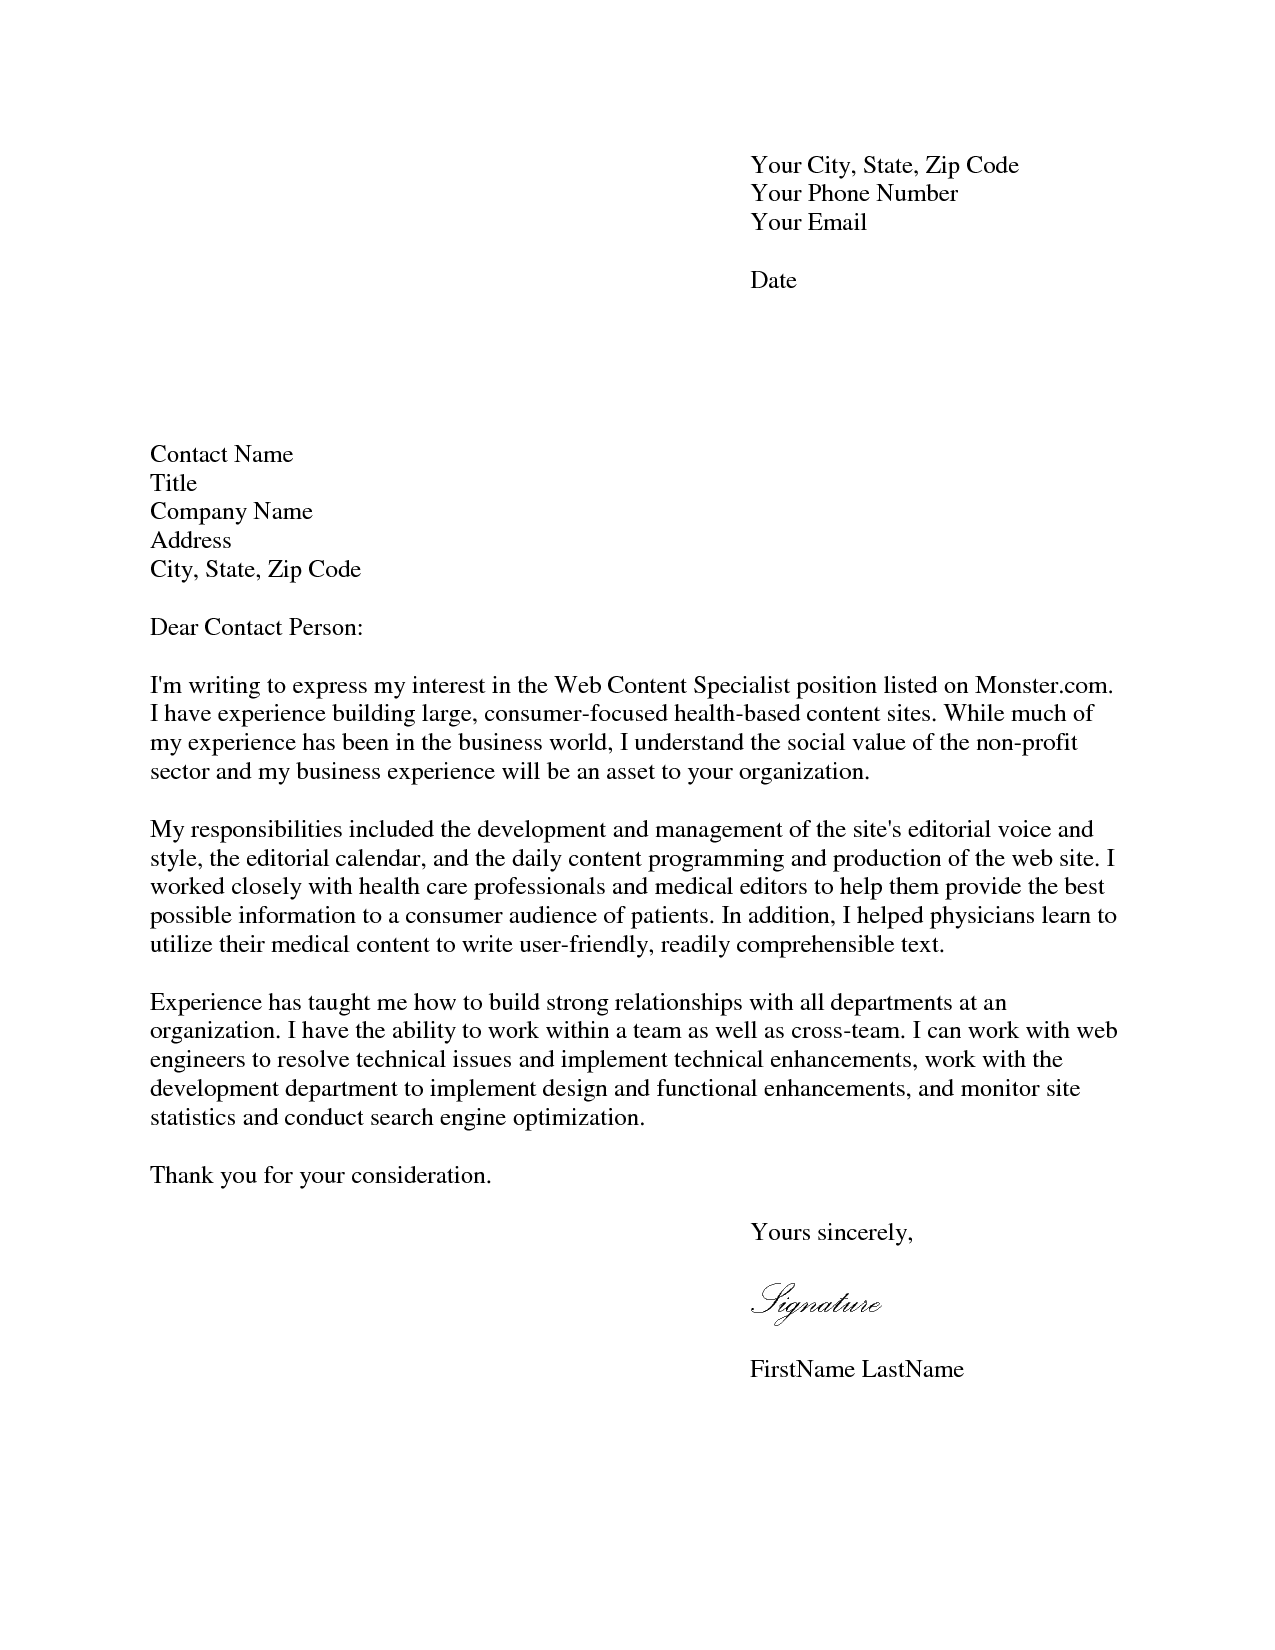 www cover letter for job application - cover letter job application job application cover